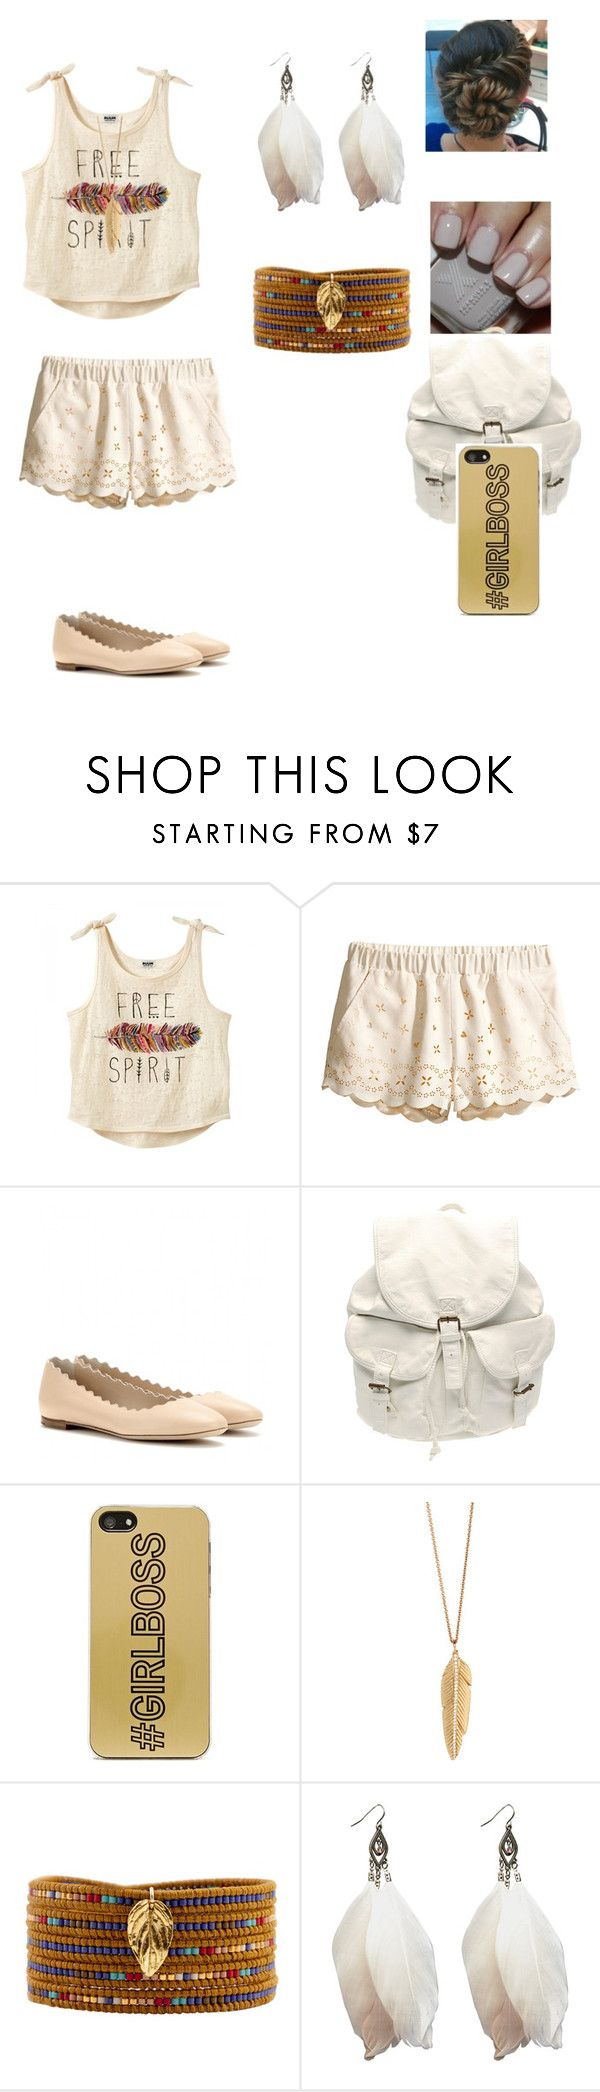 """Untitled #9"" by neoncupcakes23 ❤ liked on Polyvore featuring H&M, Chloé, Sephora Collection, Zero Gravity, ZoÃ« Chicco, Chan Luu and Wet Seal"